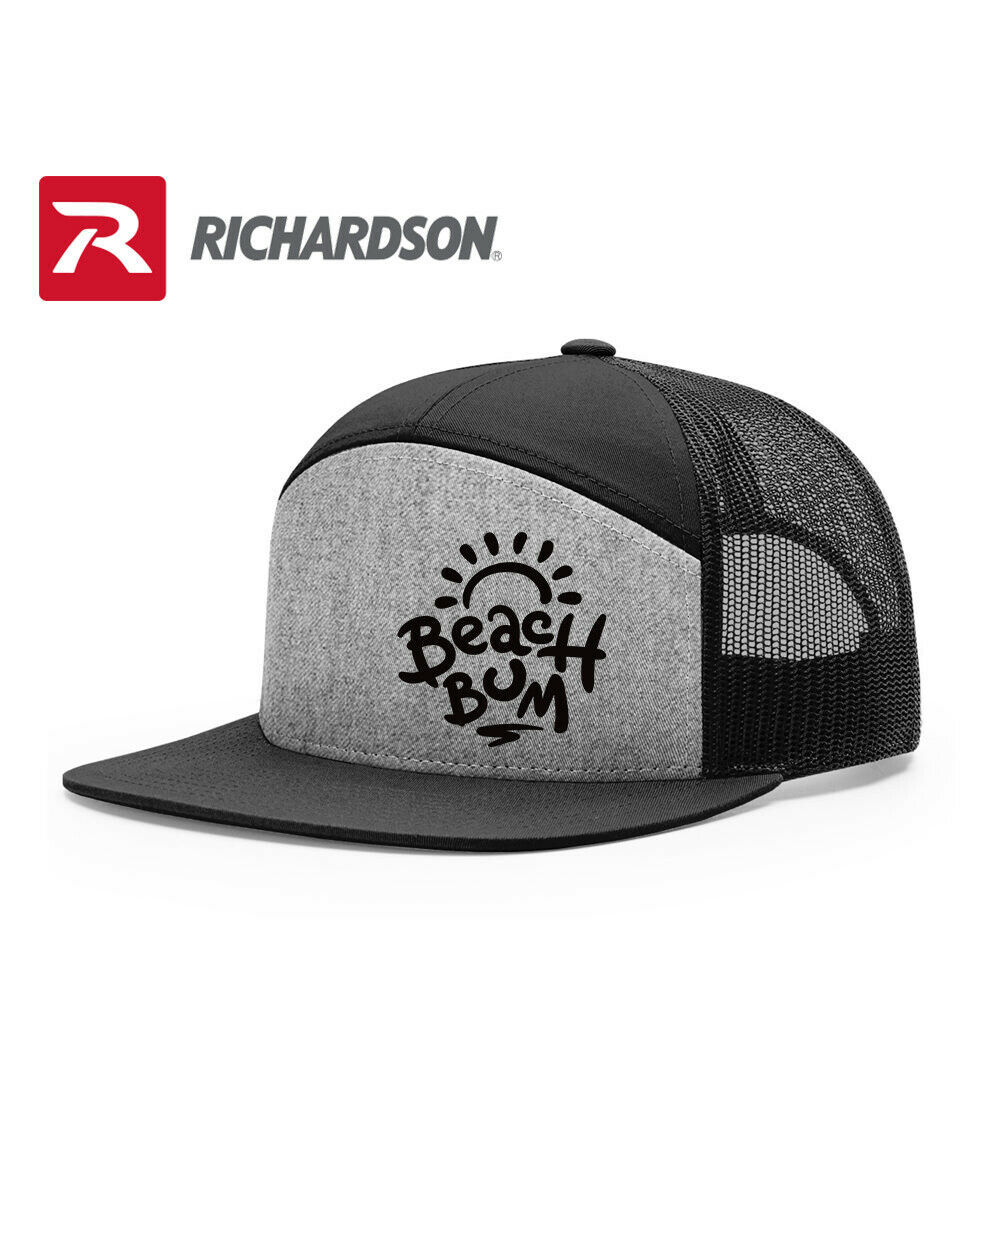 Primary image for BEACH BUM SURFER LOVER RICHARDSON FLAT BILL SNAPBACK HAT * FREE SHIPPING in BOX*